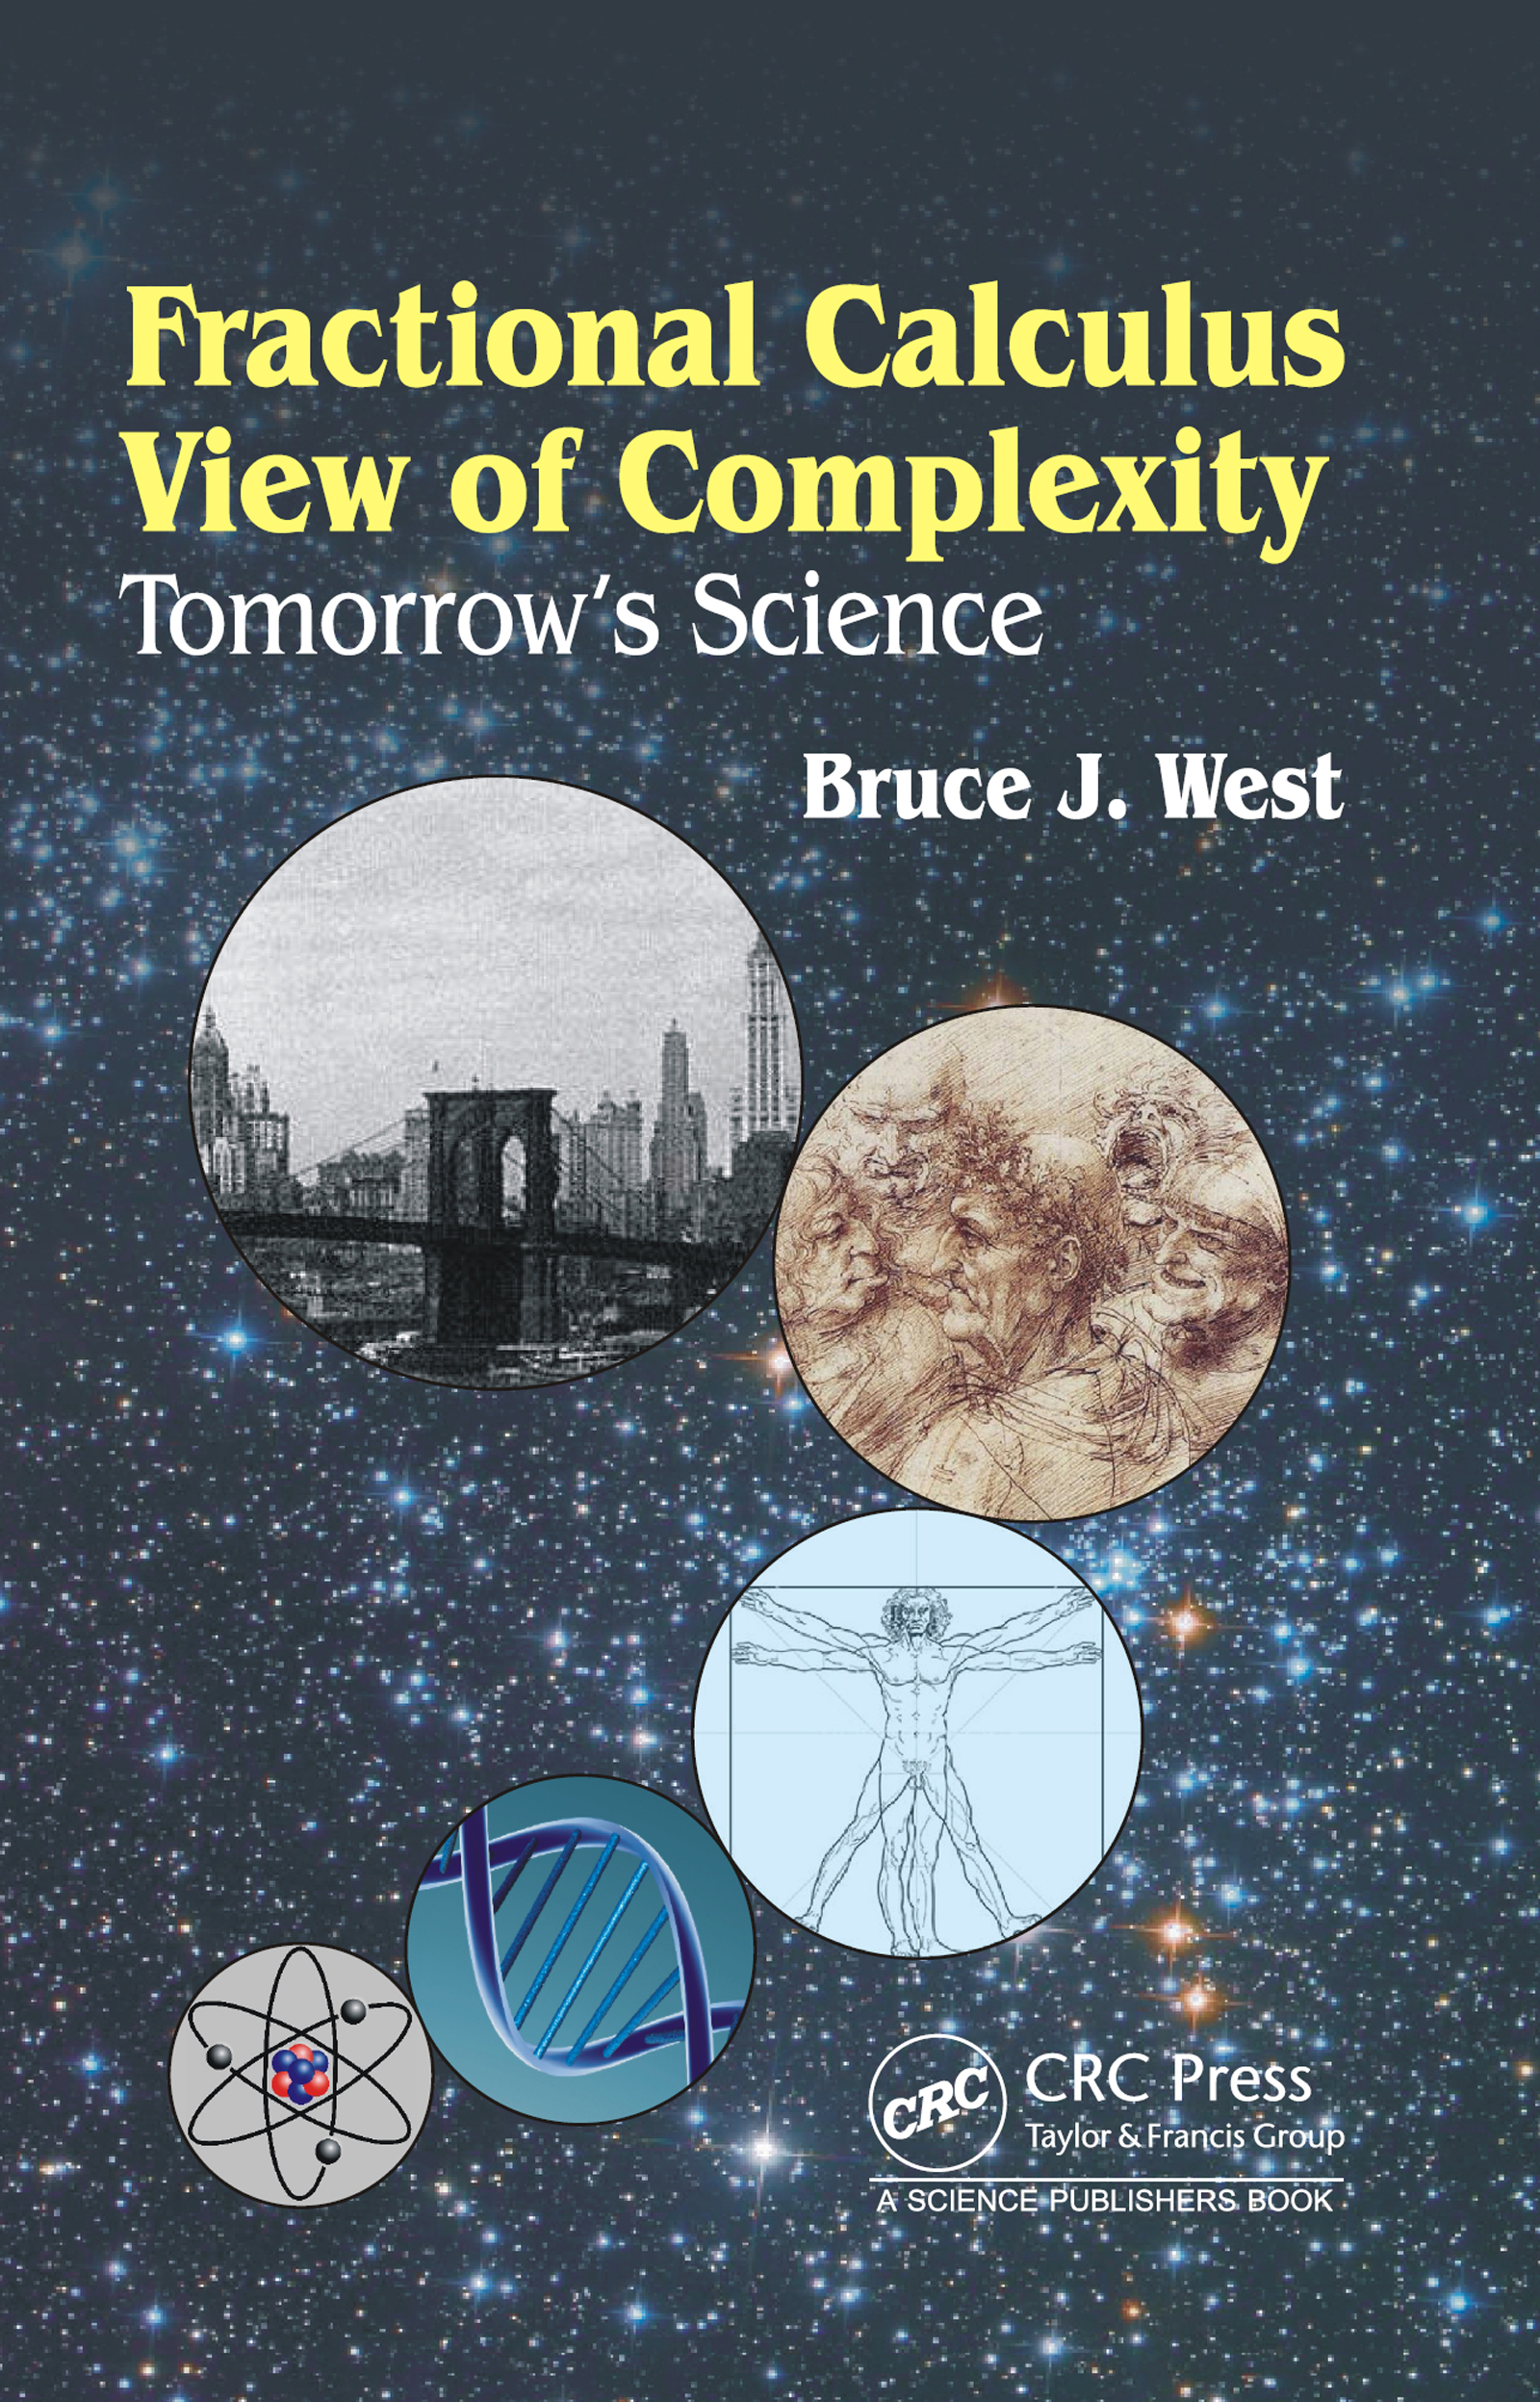 Fractional Calculus View of Complexity